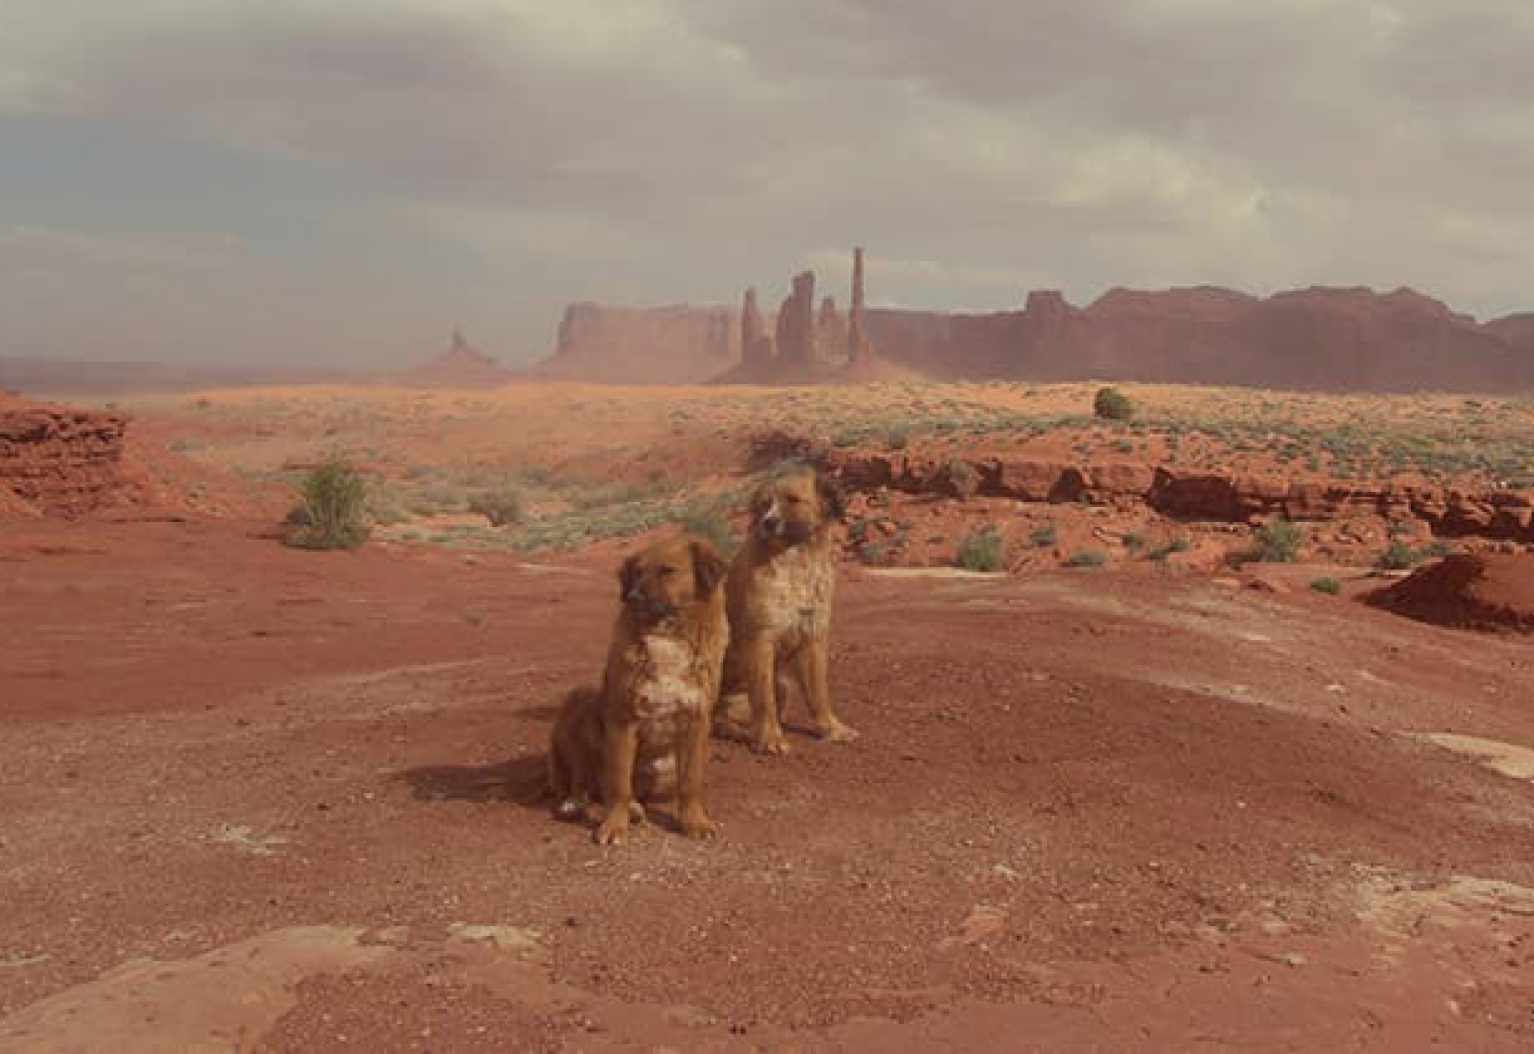 Wild Dogs in a Monument Valley Sandstorm